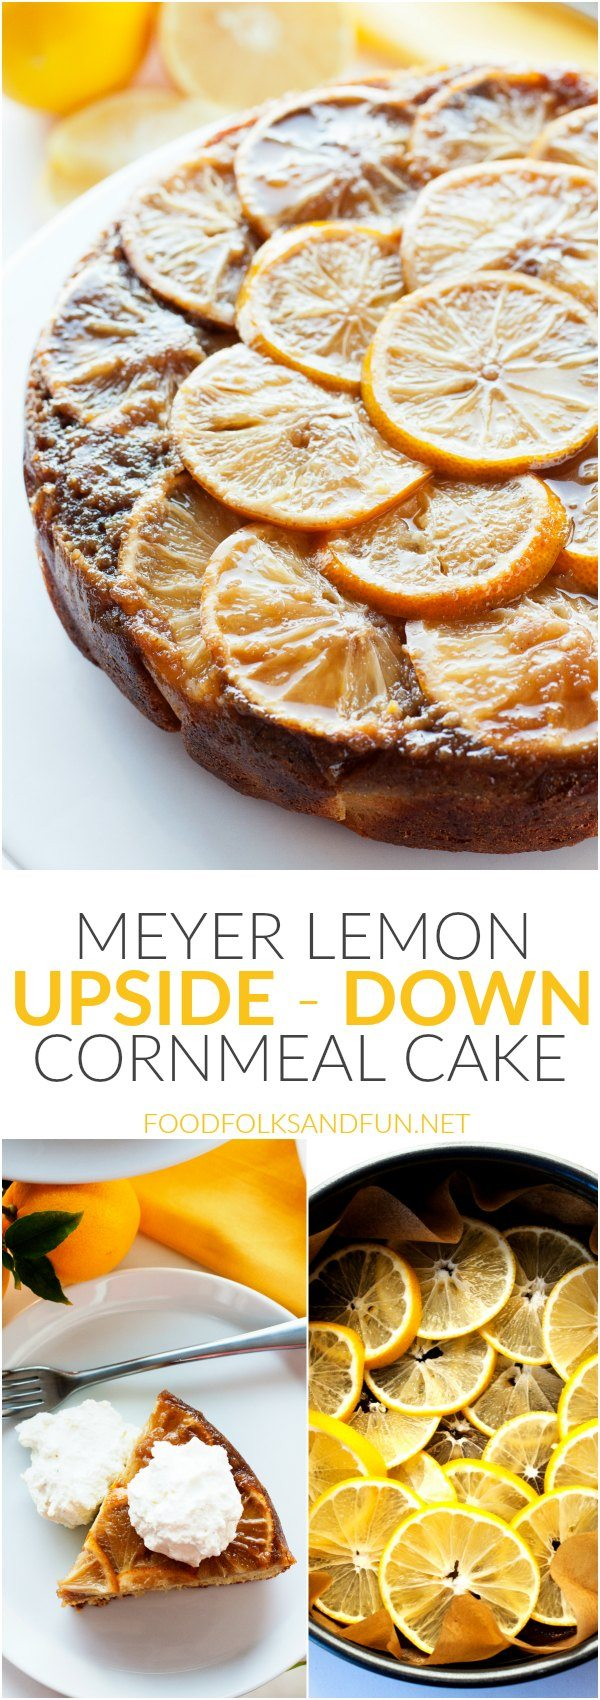 A collage of Meyer Lemon Upside Down Cornmeal Cake with text overlay for Pinterest